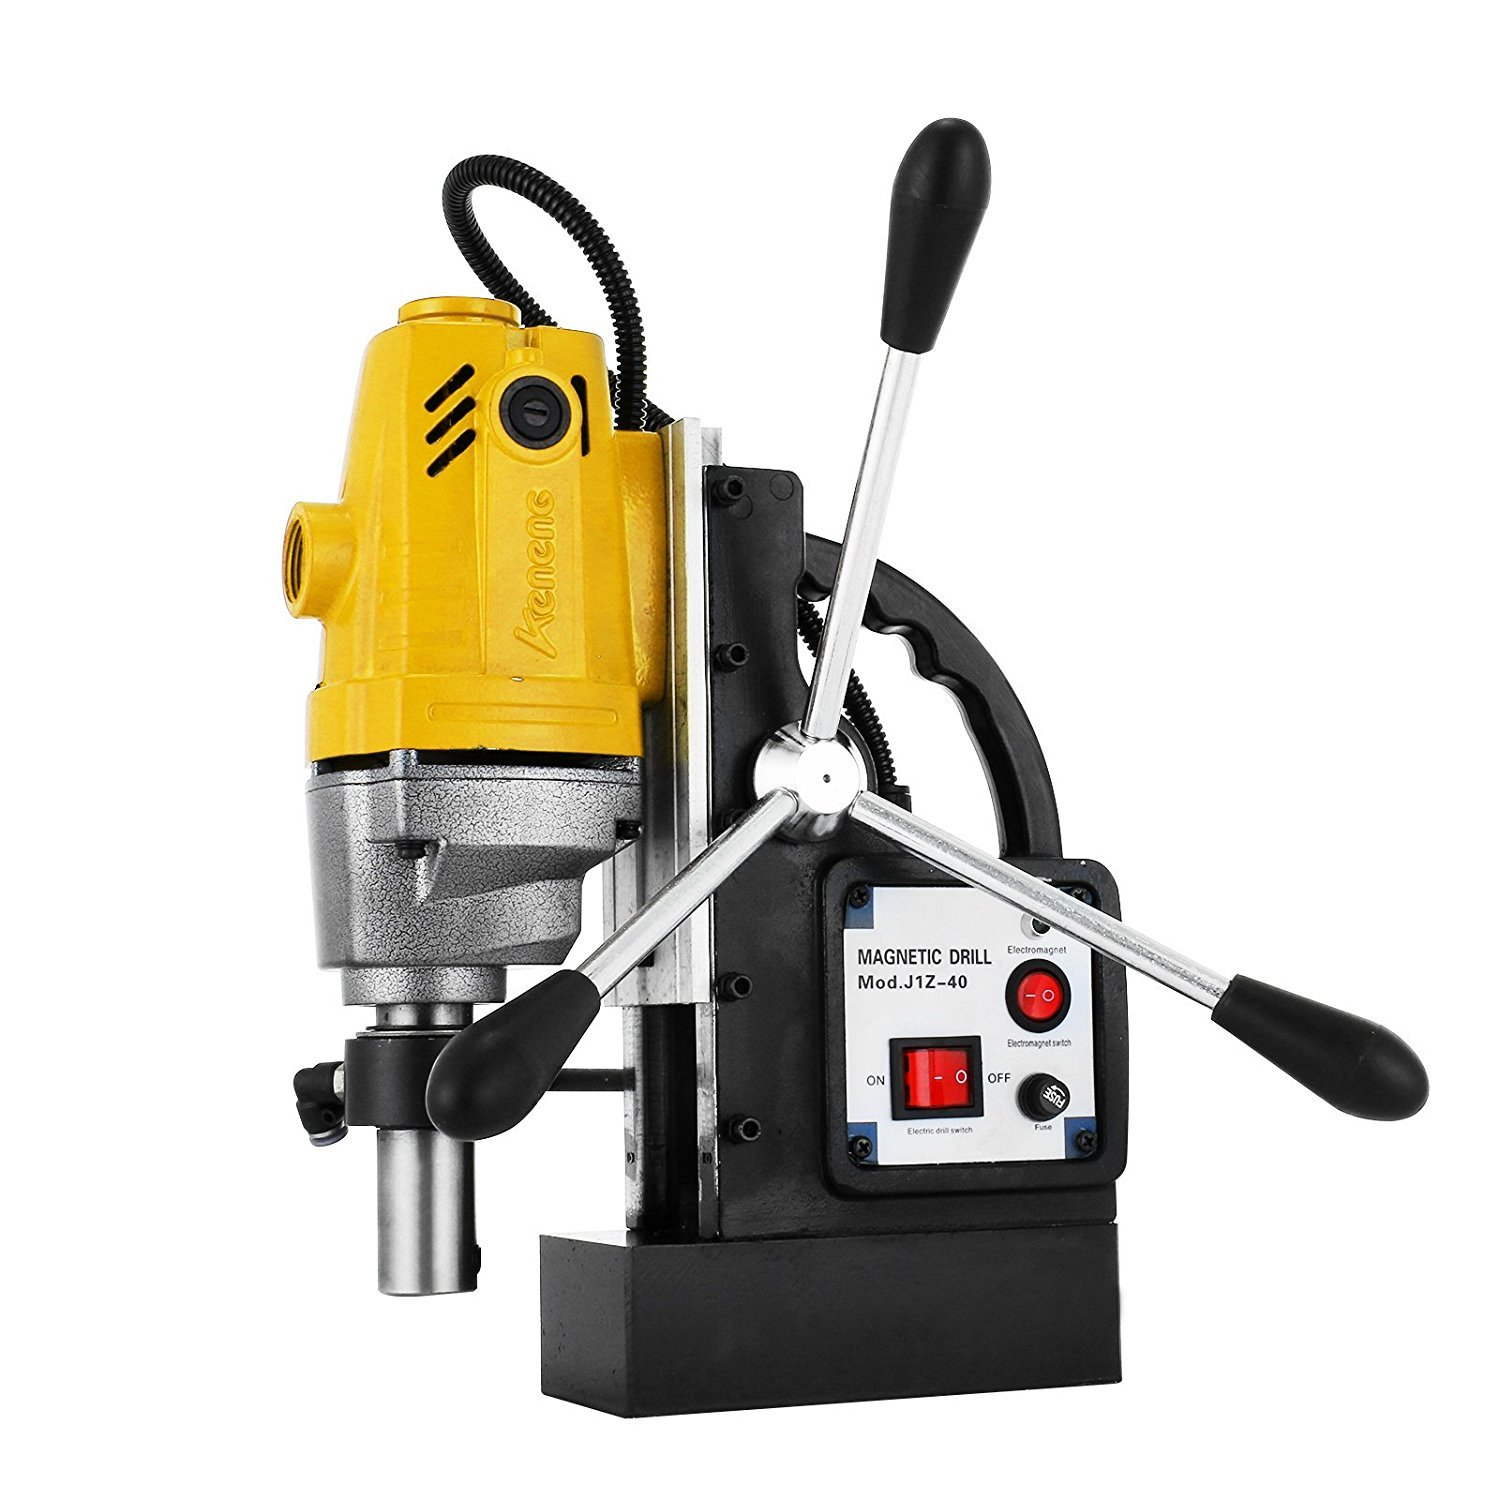 VEVOR MD40 Magnetic Drill Press 1-1 2'' Boring and 2700 Lbs Magnet Magnetic Drilling System